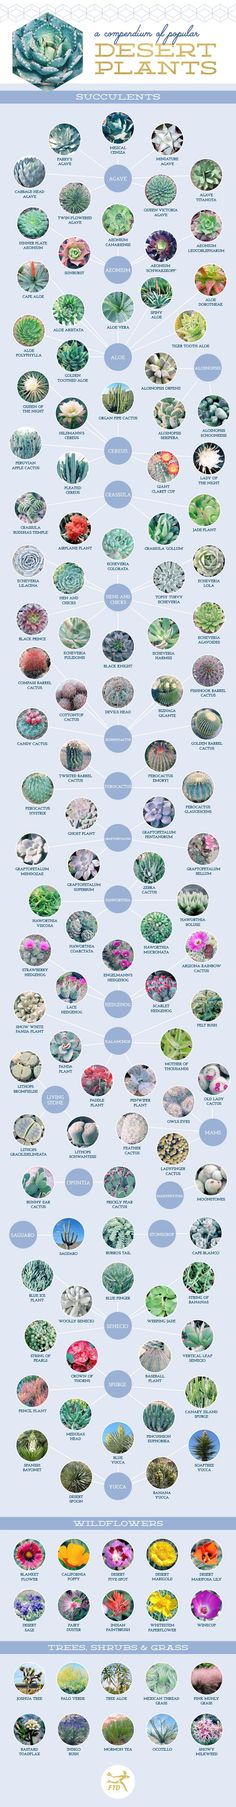 A Compendium of Popular Desert Plants #Infographic #Plants More